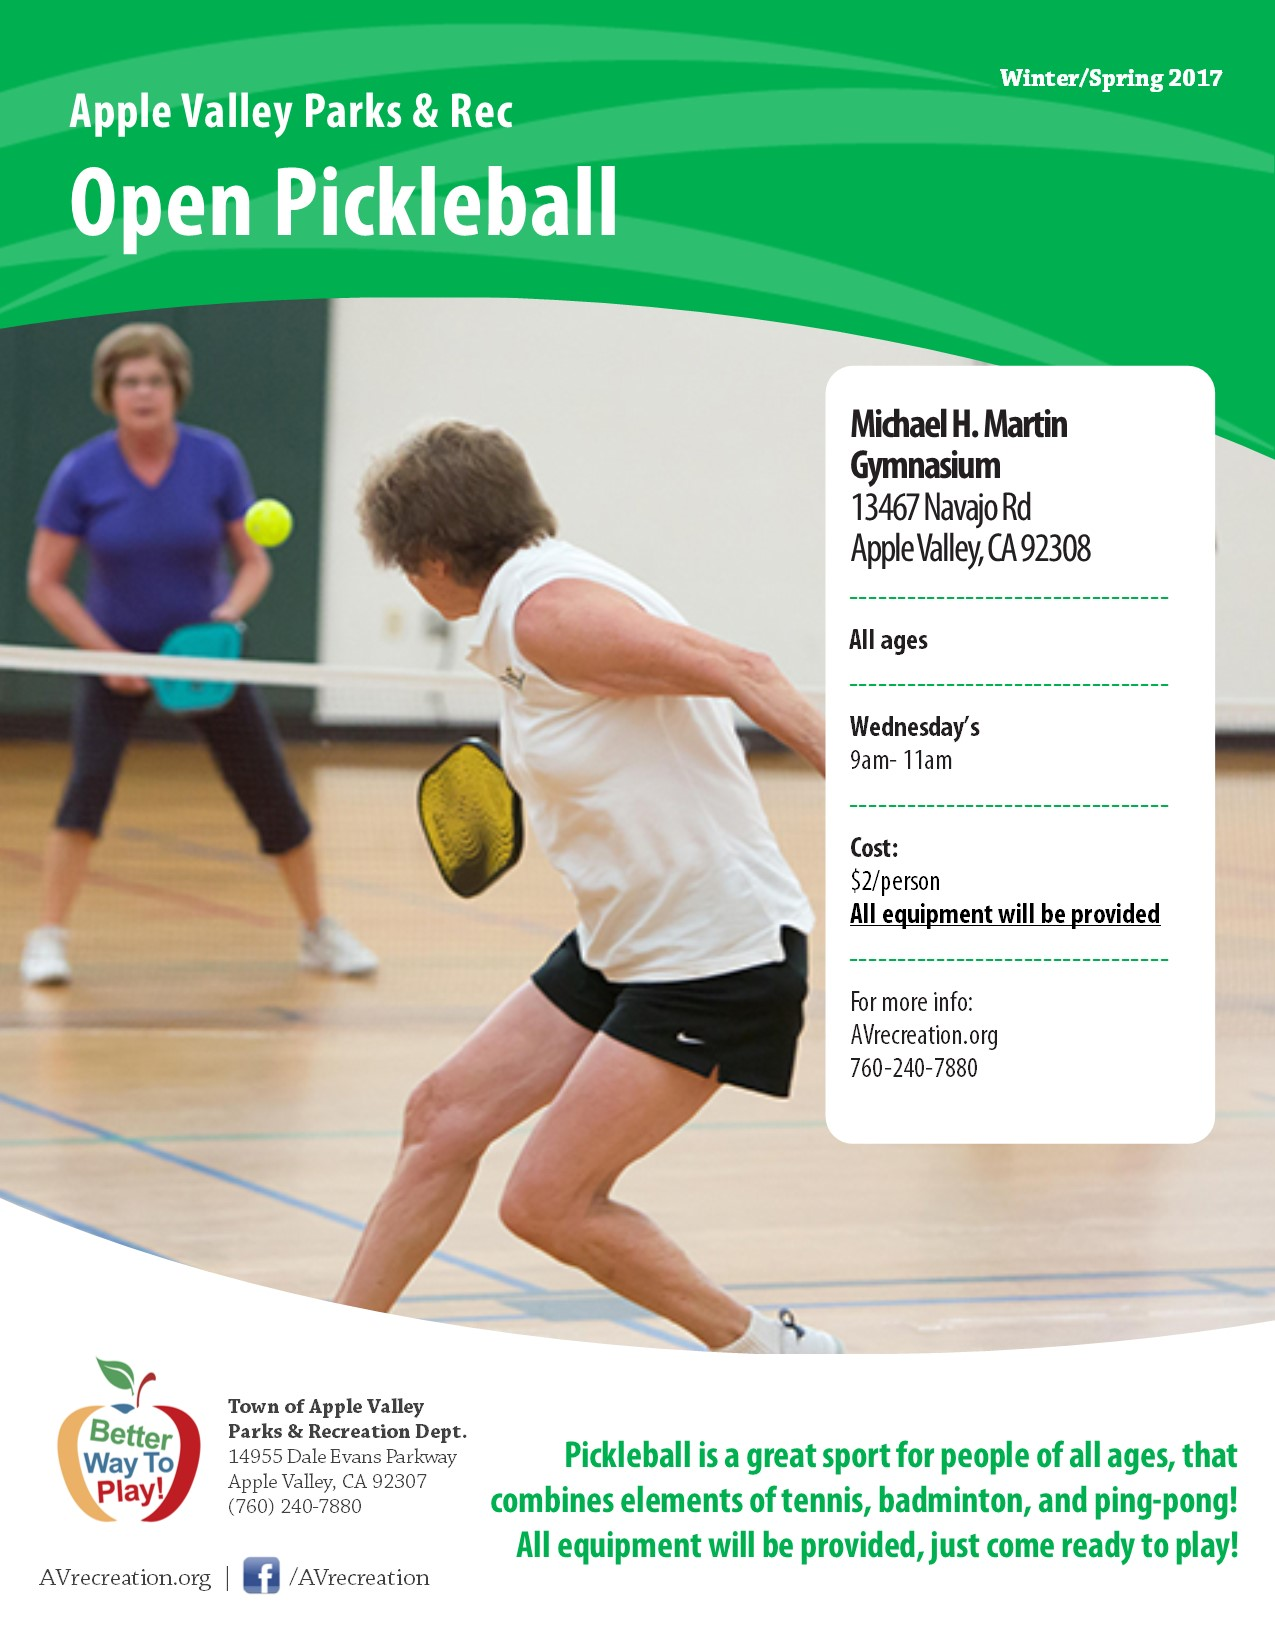 Open Pickleball